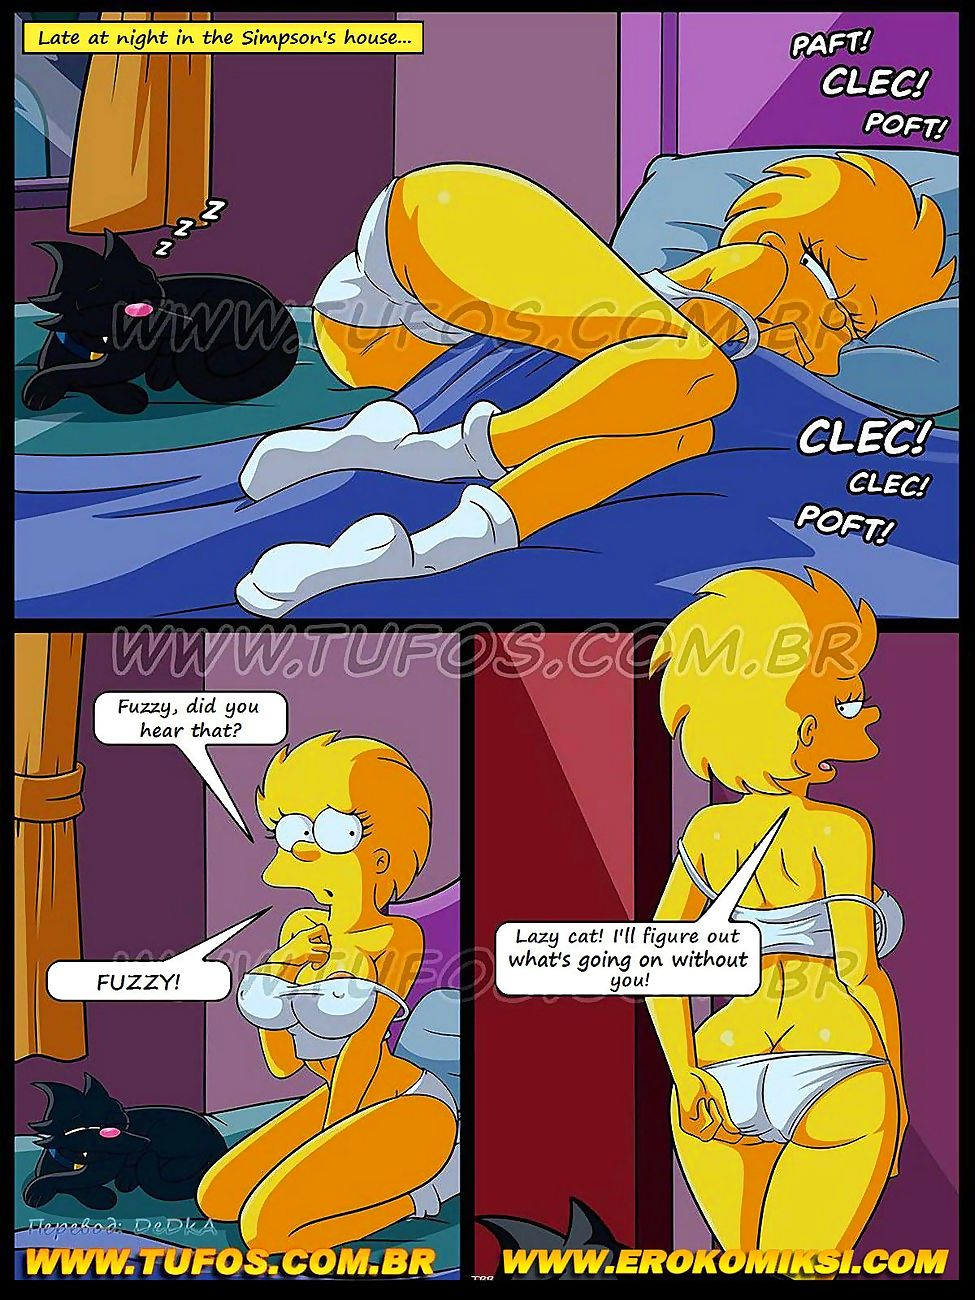 Be transferred to Simpsons 5 - Spying